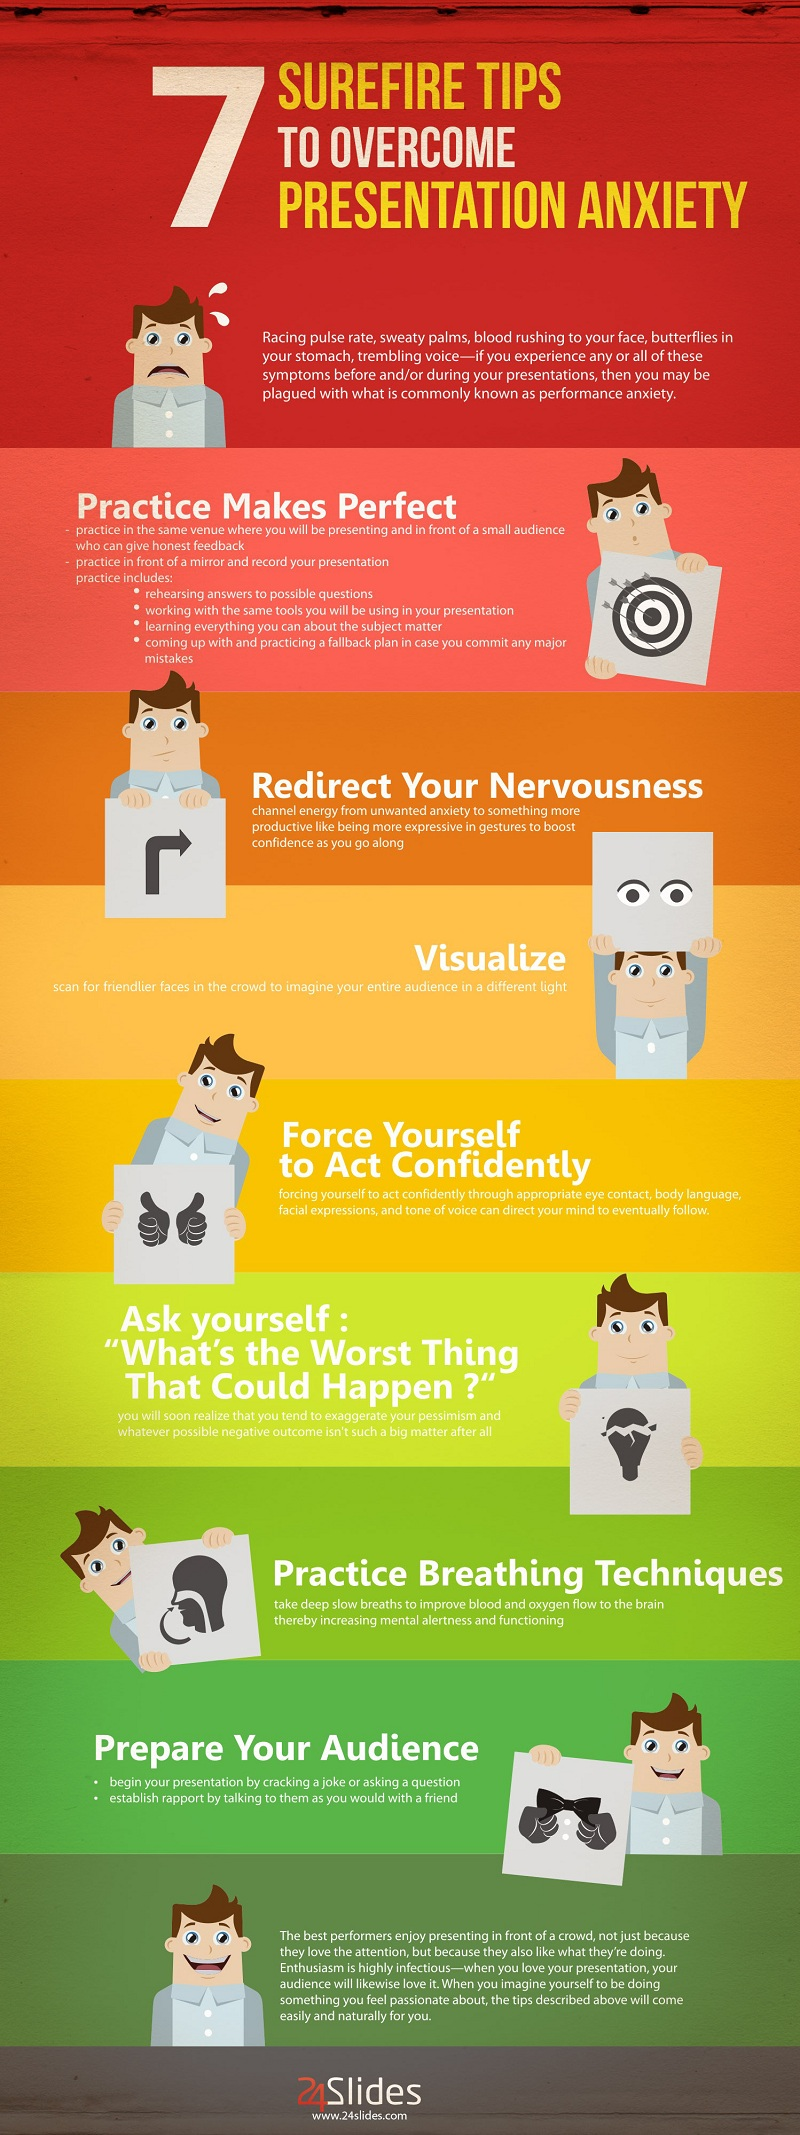 Surefire-Tips-to-Overcome-Presentation-Anxiety